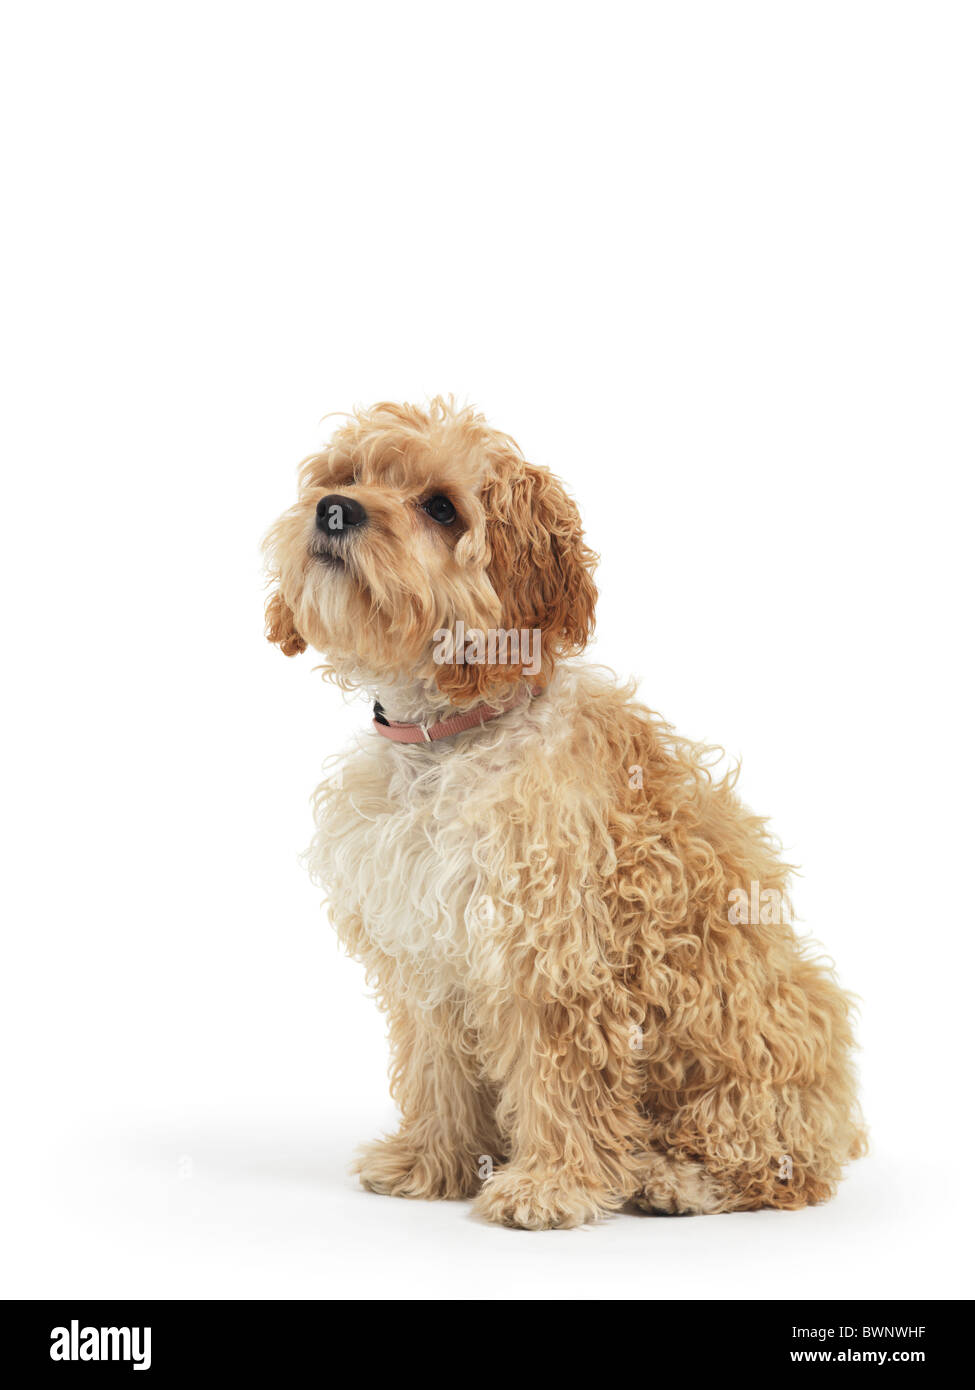 Cockapoo cute cross breed dog of cocker spaniel and a poodle isolated on white background Stock Photo